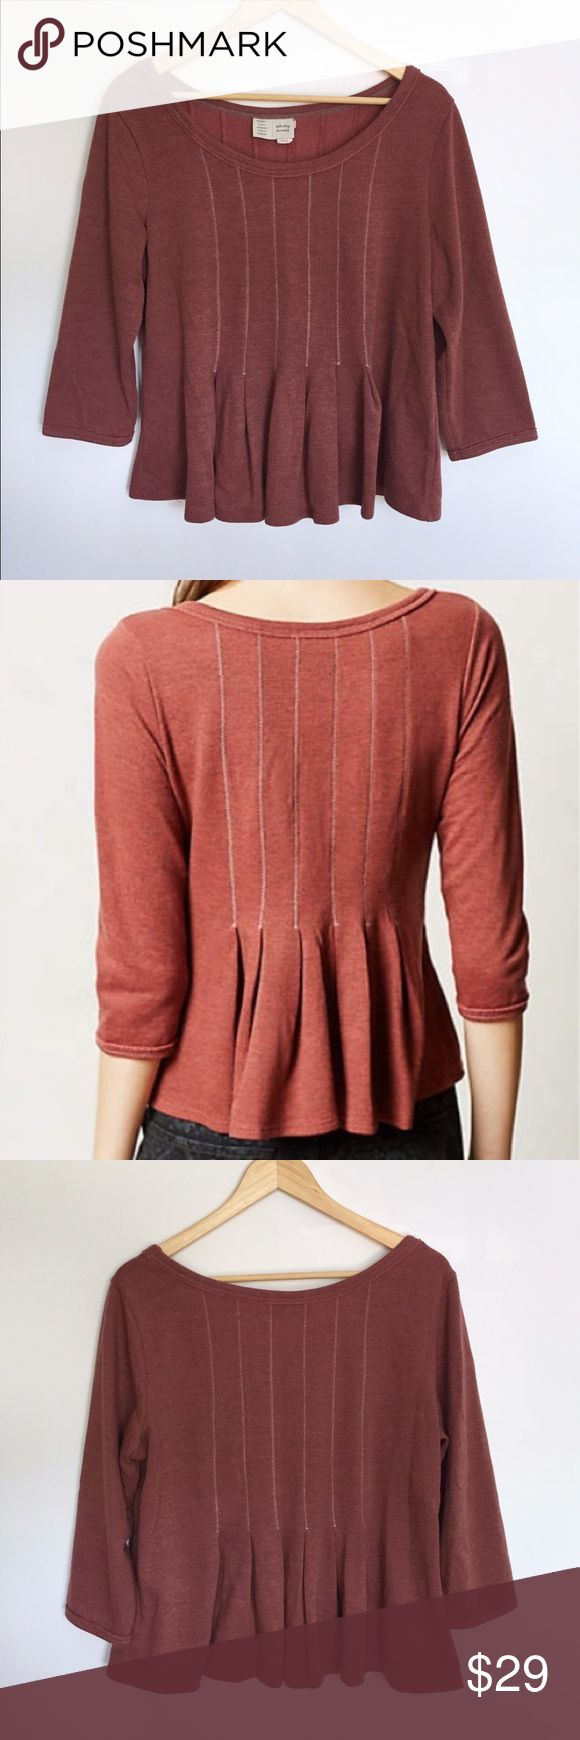 Anthropologie Saturday Sunday burnt red peplum top This top is adorable with dark jeans and a long necklace. Decorative stitching and pleating on front and back. 3/4 sleeves. Scoop neck. Comfy polyester/cotton blend feels sort of like a heavy sweatshirt. In excellent used condition except for a tiny snag in the stitching on the back (pictured). Anthropologie Tops